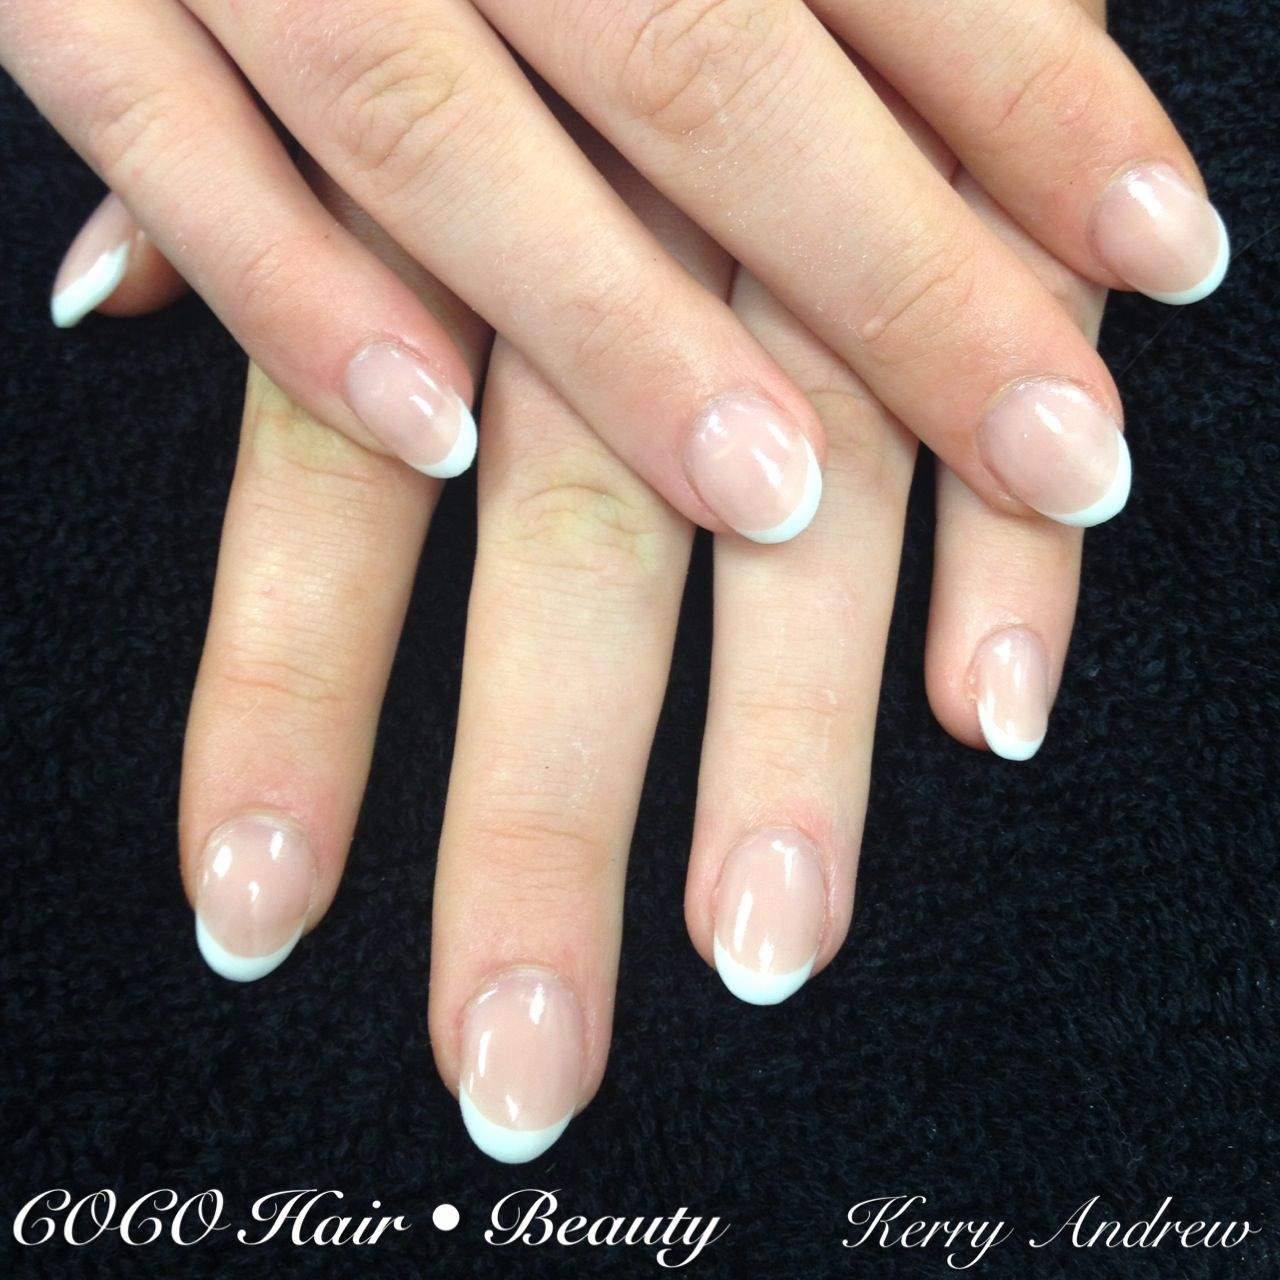 Pin By Khira Smith On Nails French Tip Acrylic Nails Square Acrylic Nails Short Square Acrylic Nails